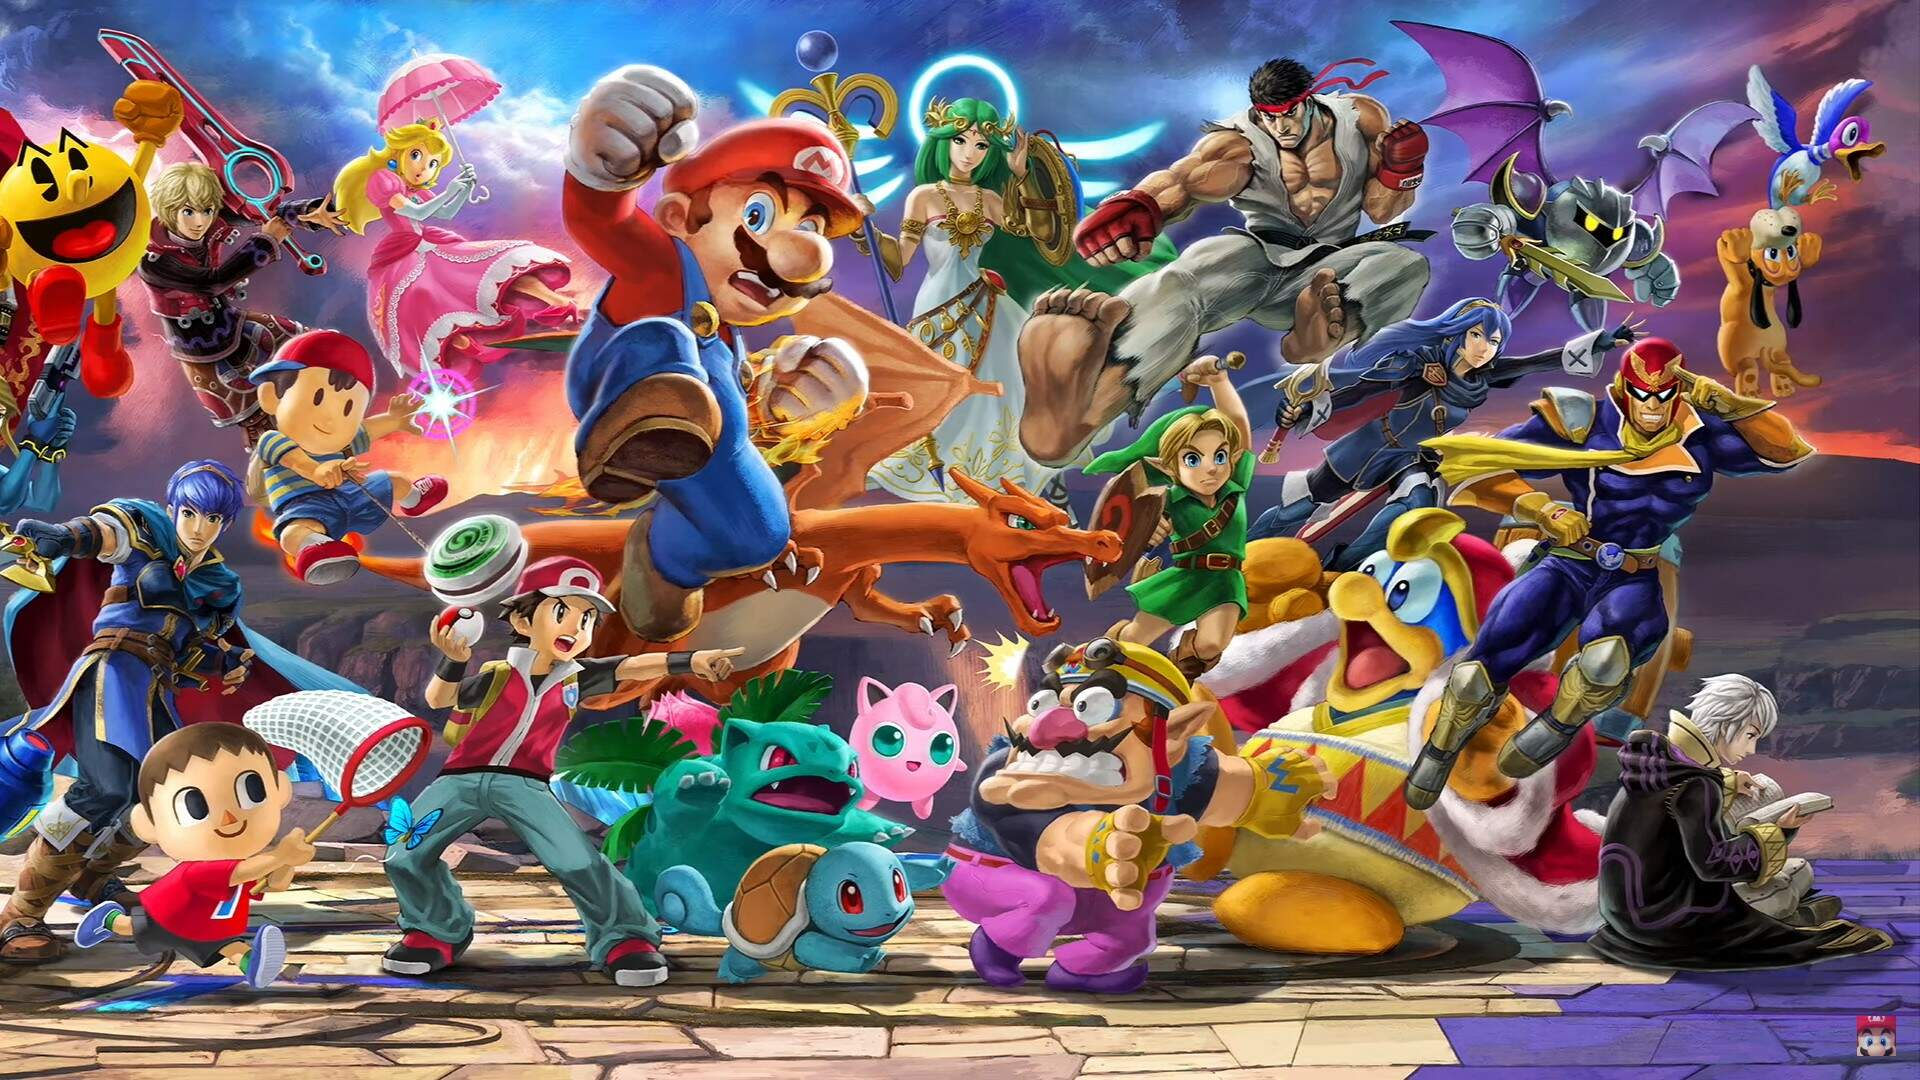 New Super Smash Bros. Presentation Reveals the Fifth DLC Fighter This Week